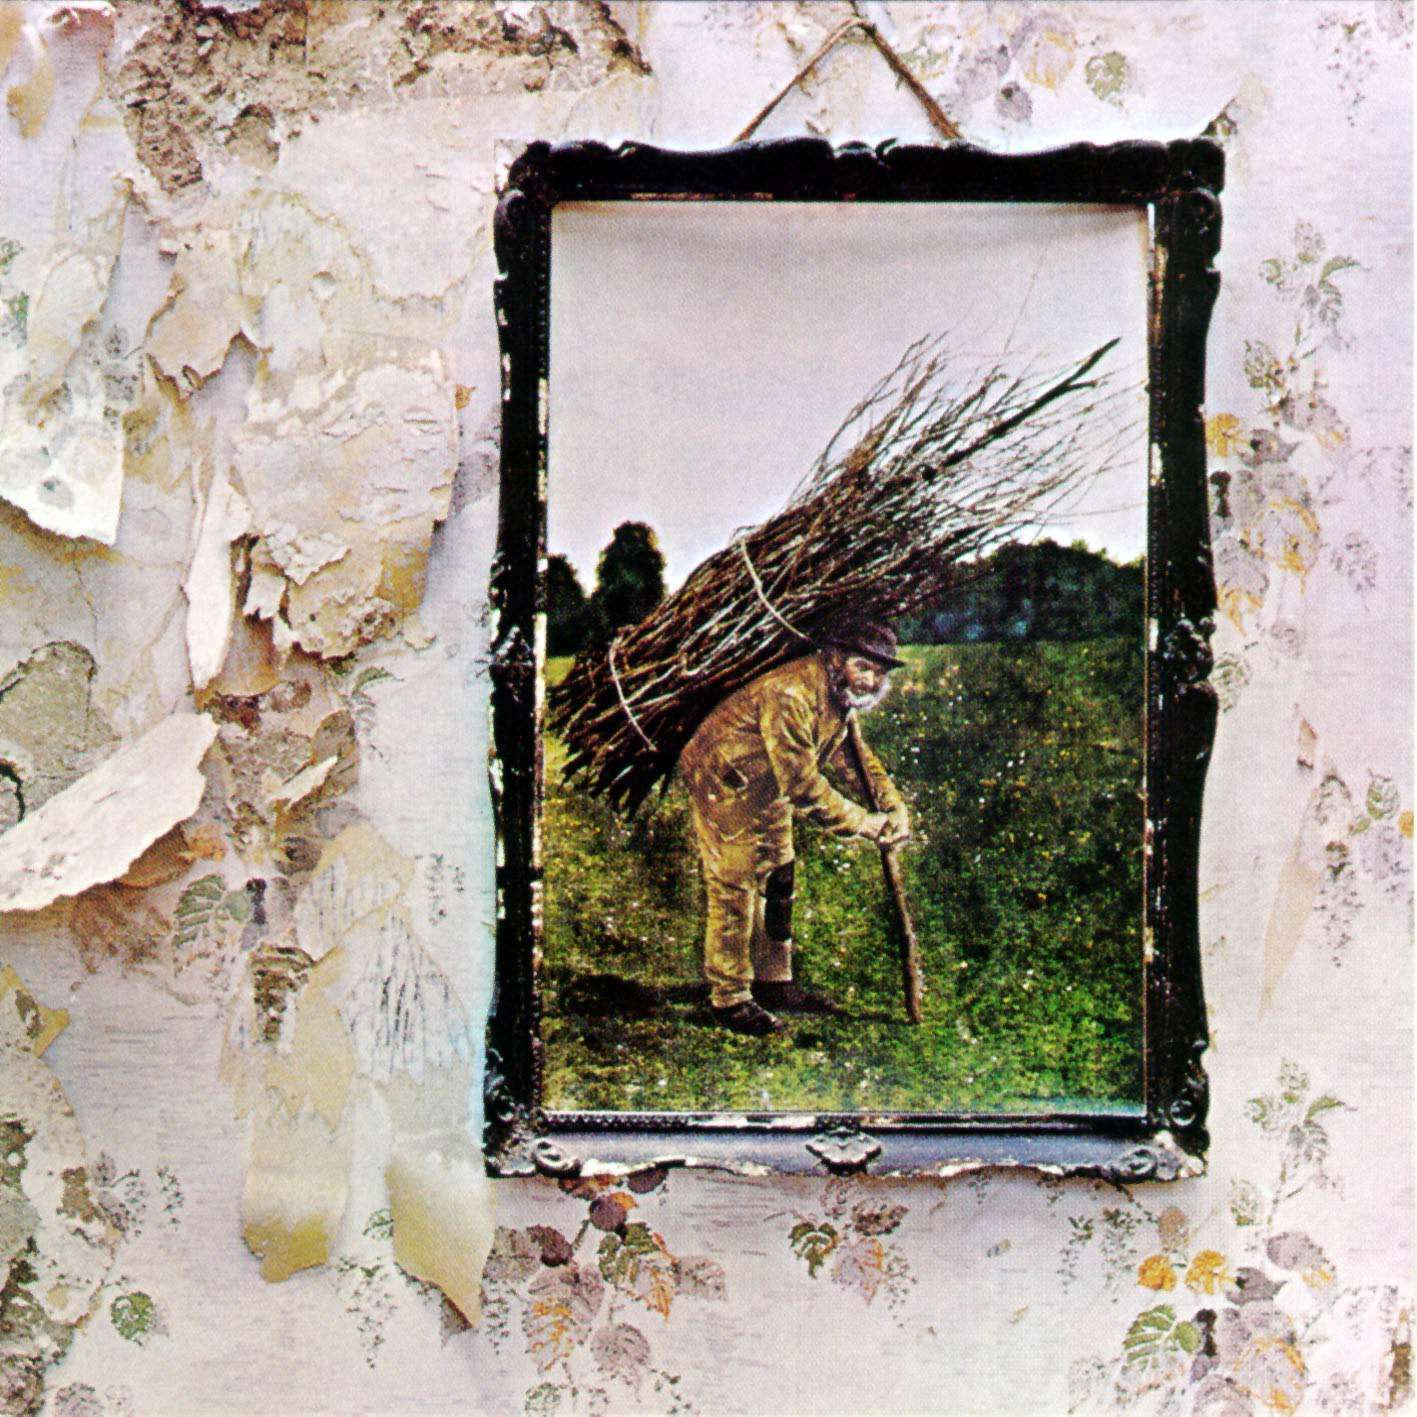 Deep pagan thoughts led zeppelin and the occult the album cover features a solitary old man with a bundle of sticks tied to his back jimmy page has tried to popularize the idea that the man on the album biocorpaavc